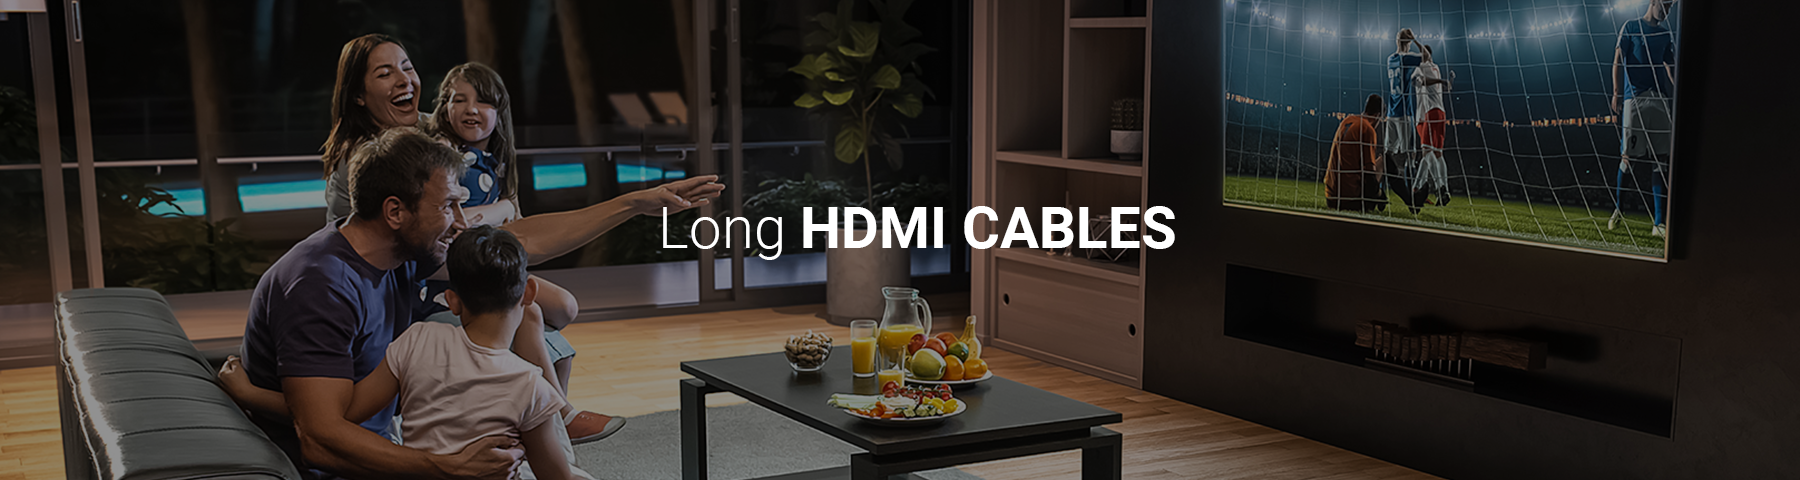 Long HDMI Cables